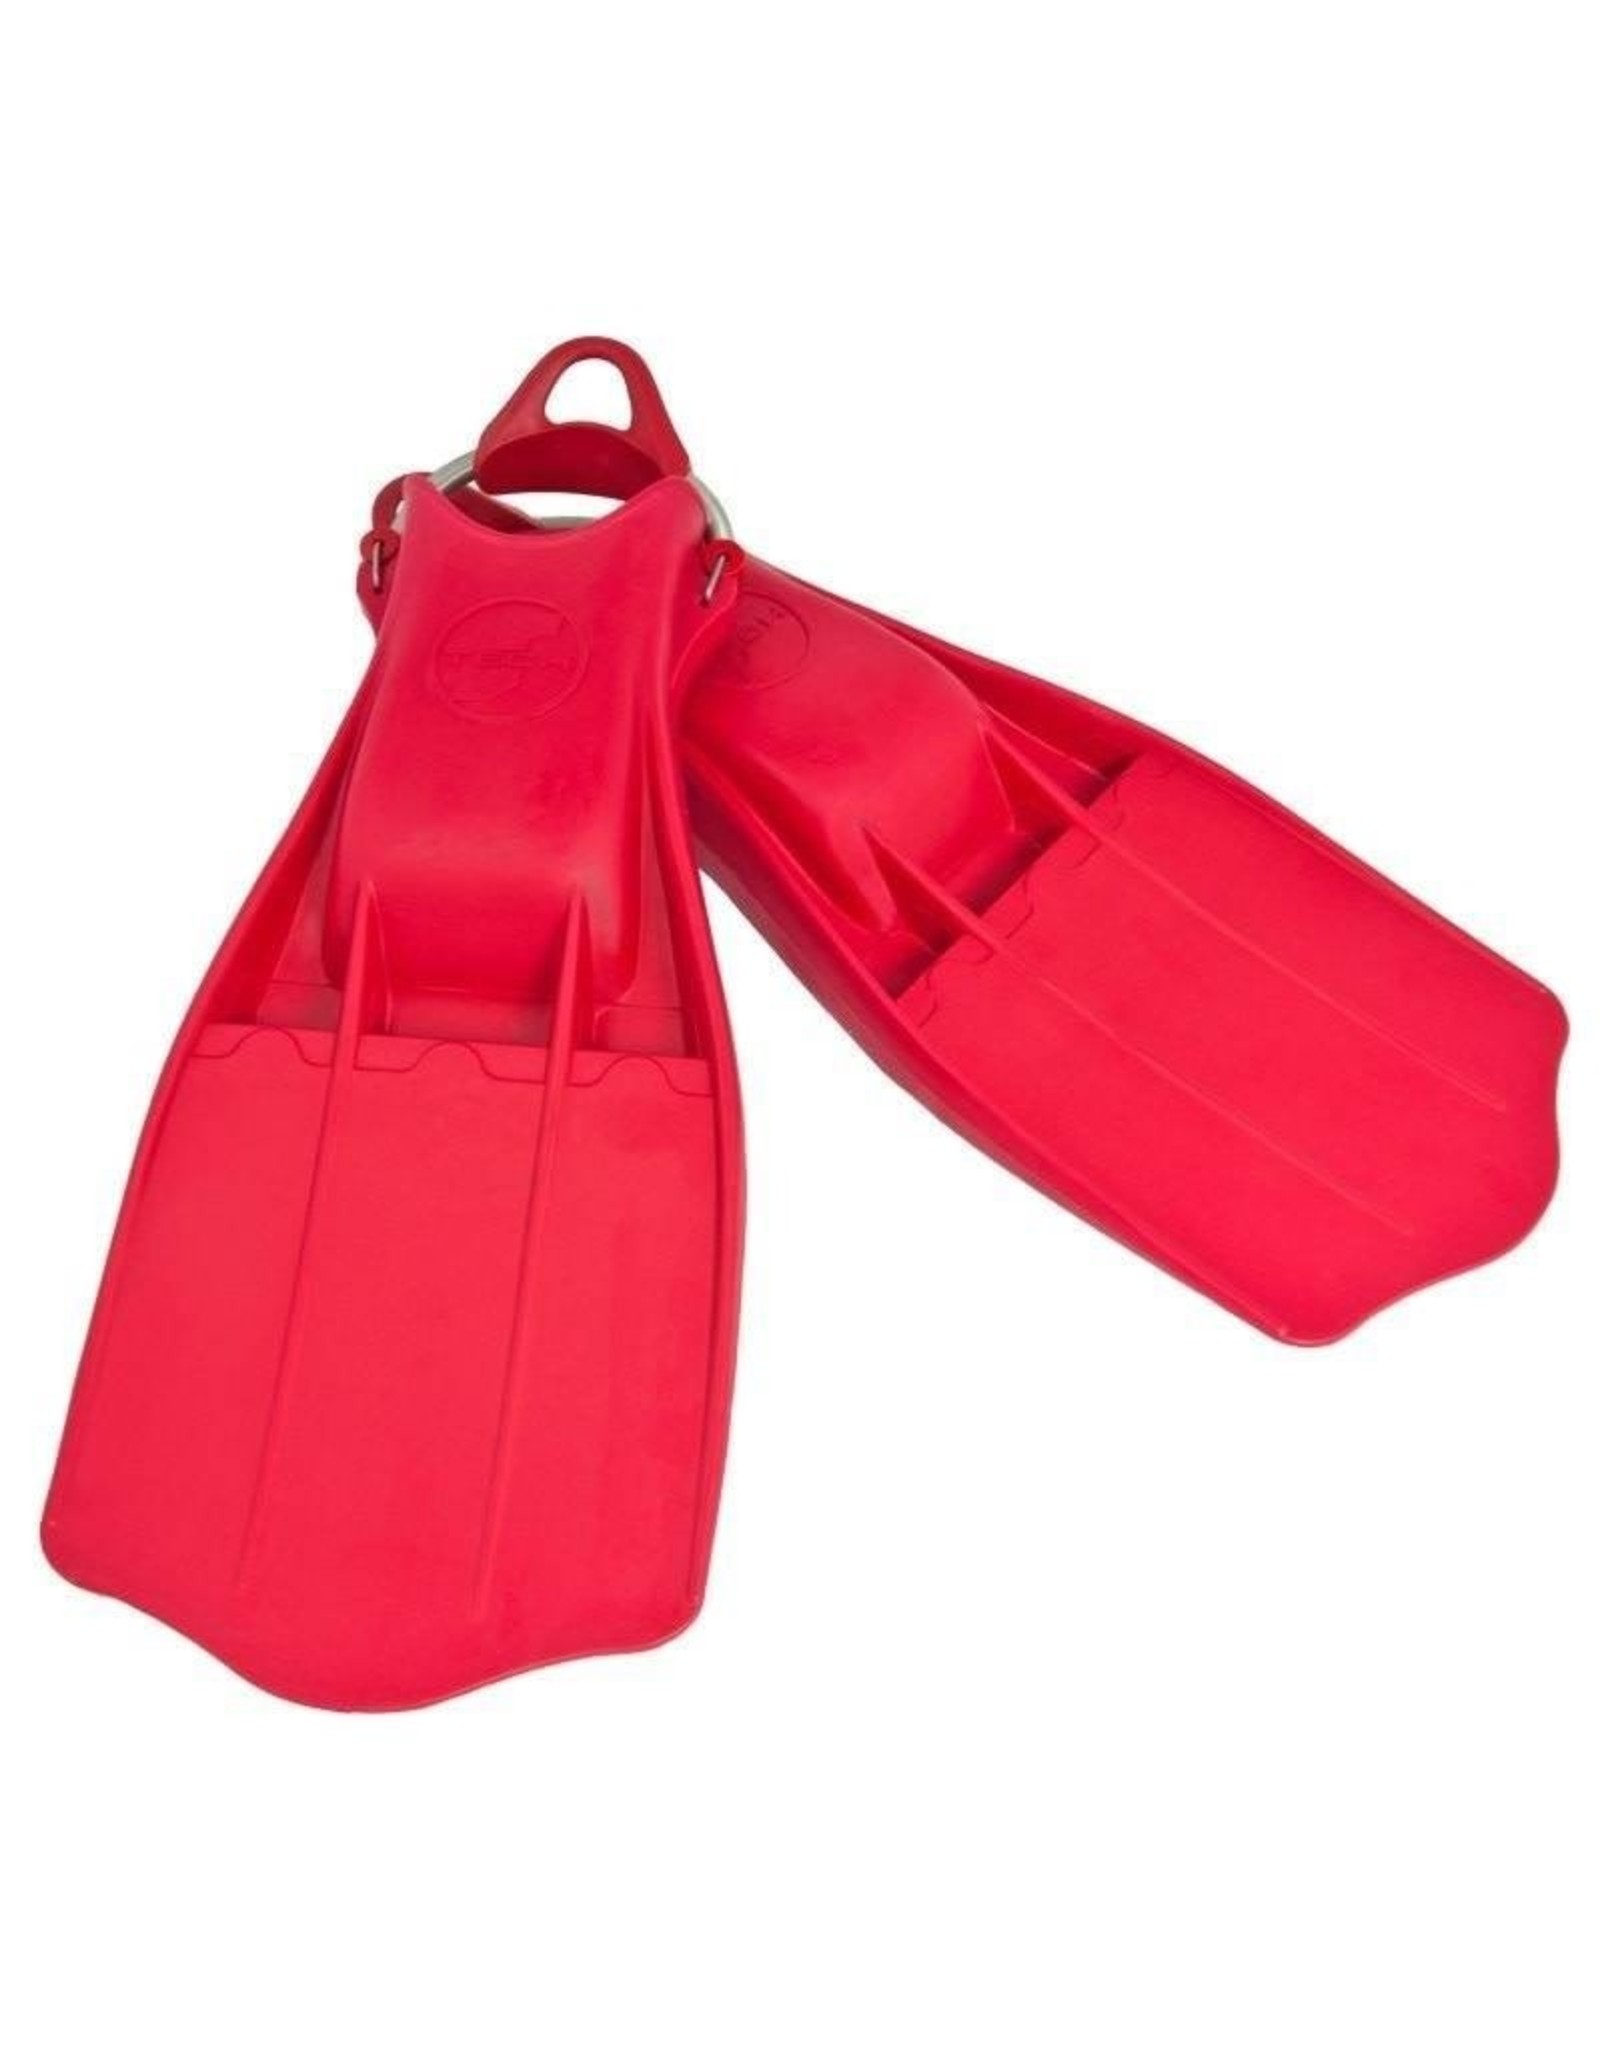 TecLine Tecline Rubber Jetstream Fins - Rood